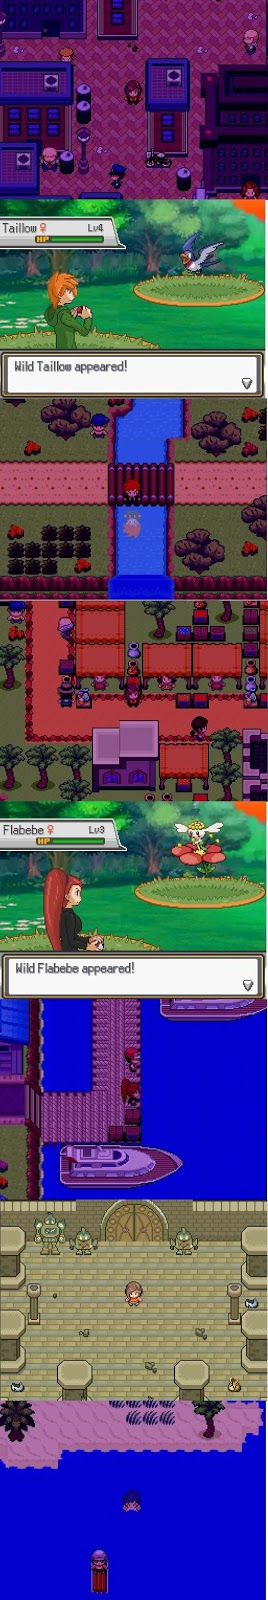 Pokemon Archaic Legacy Screenshot